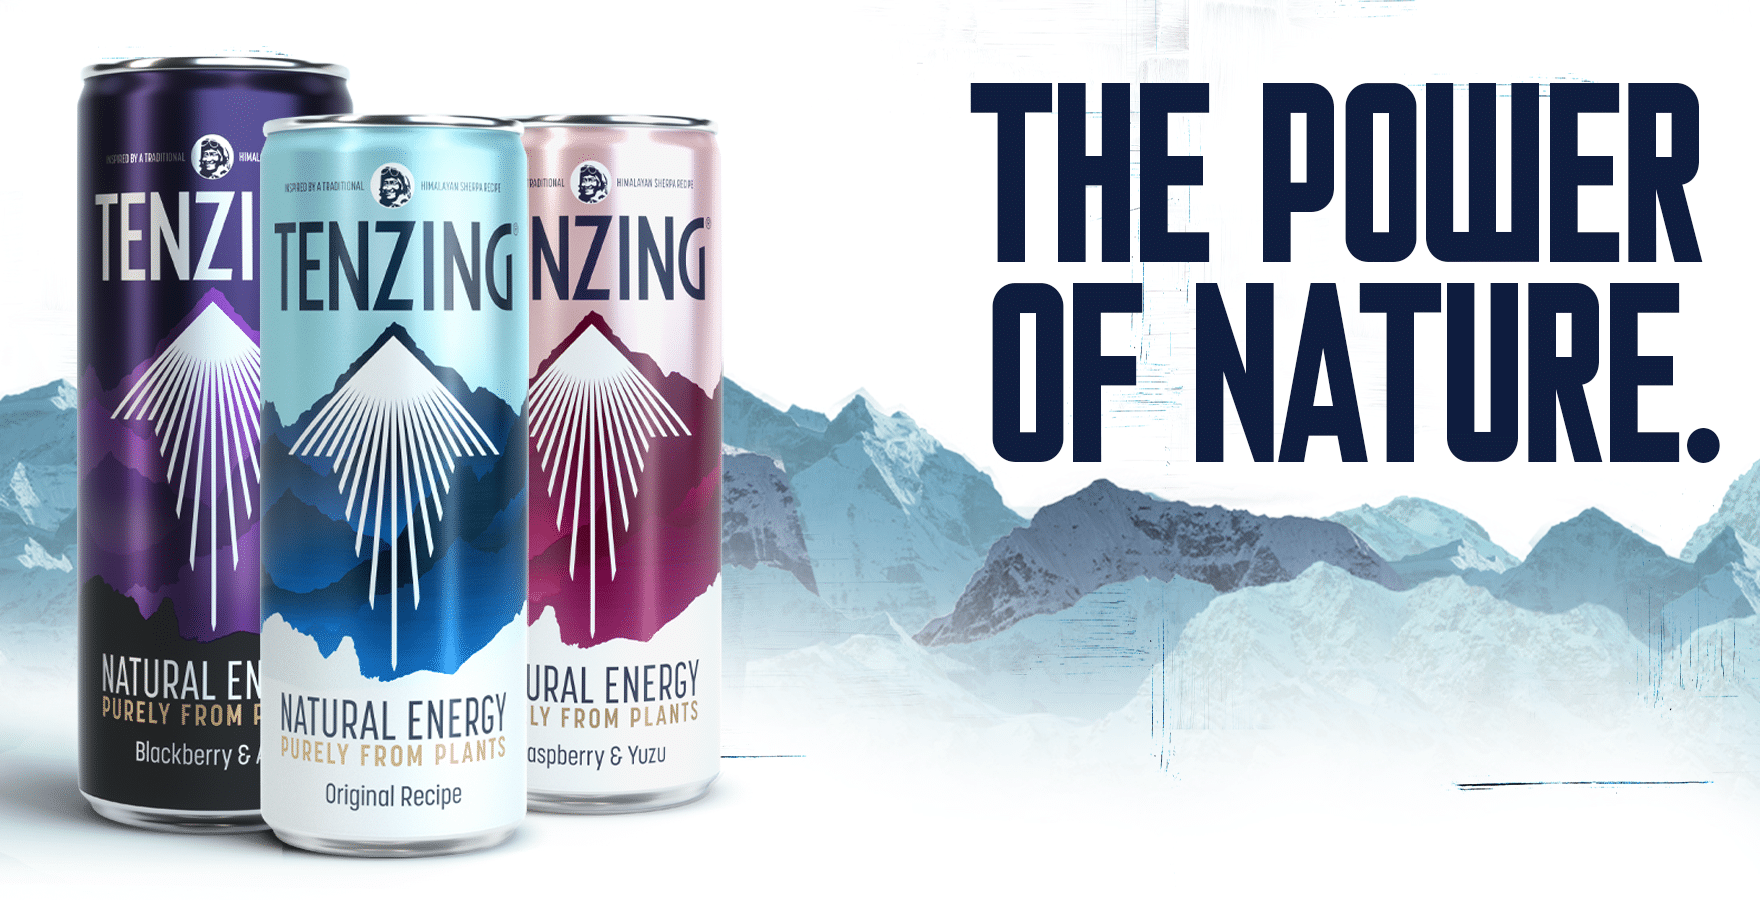 Tenzing Natural Energy Drinks